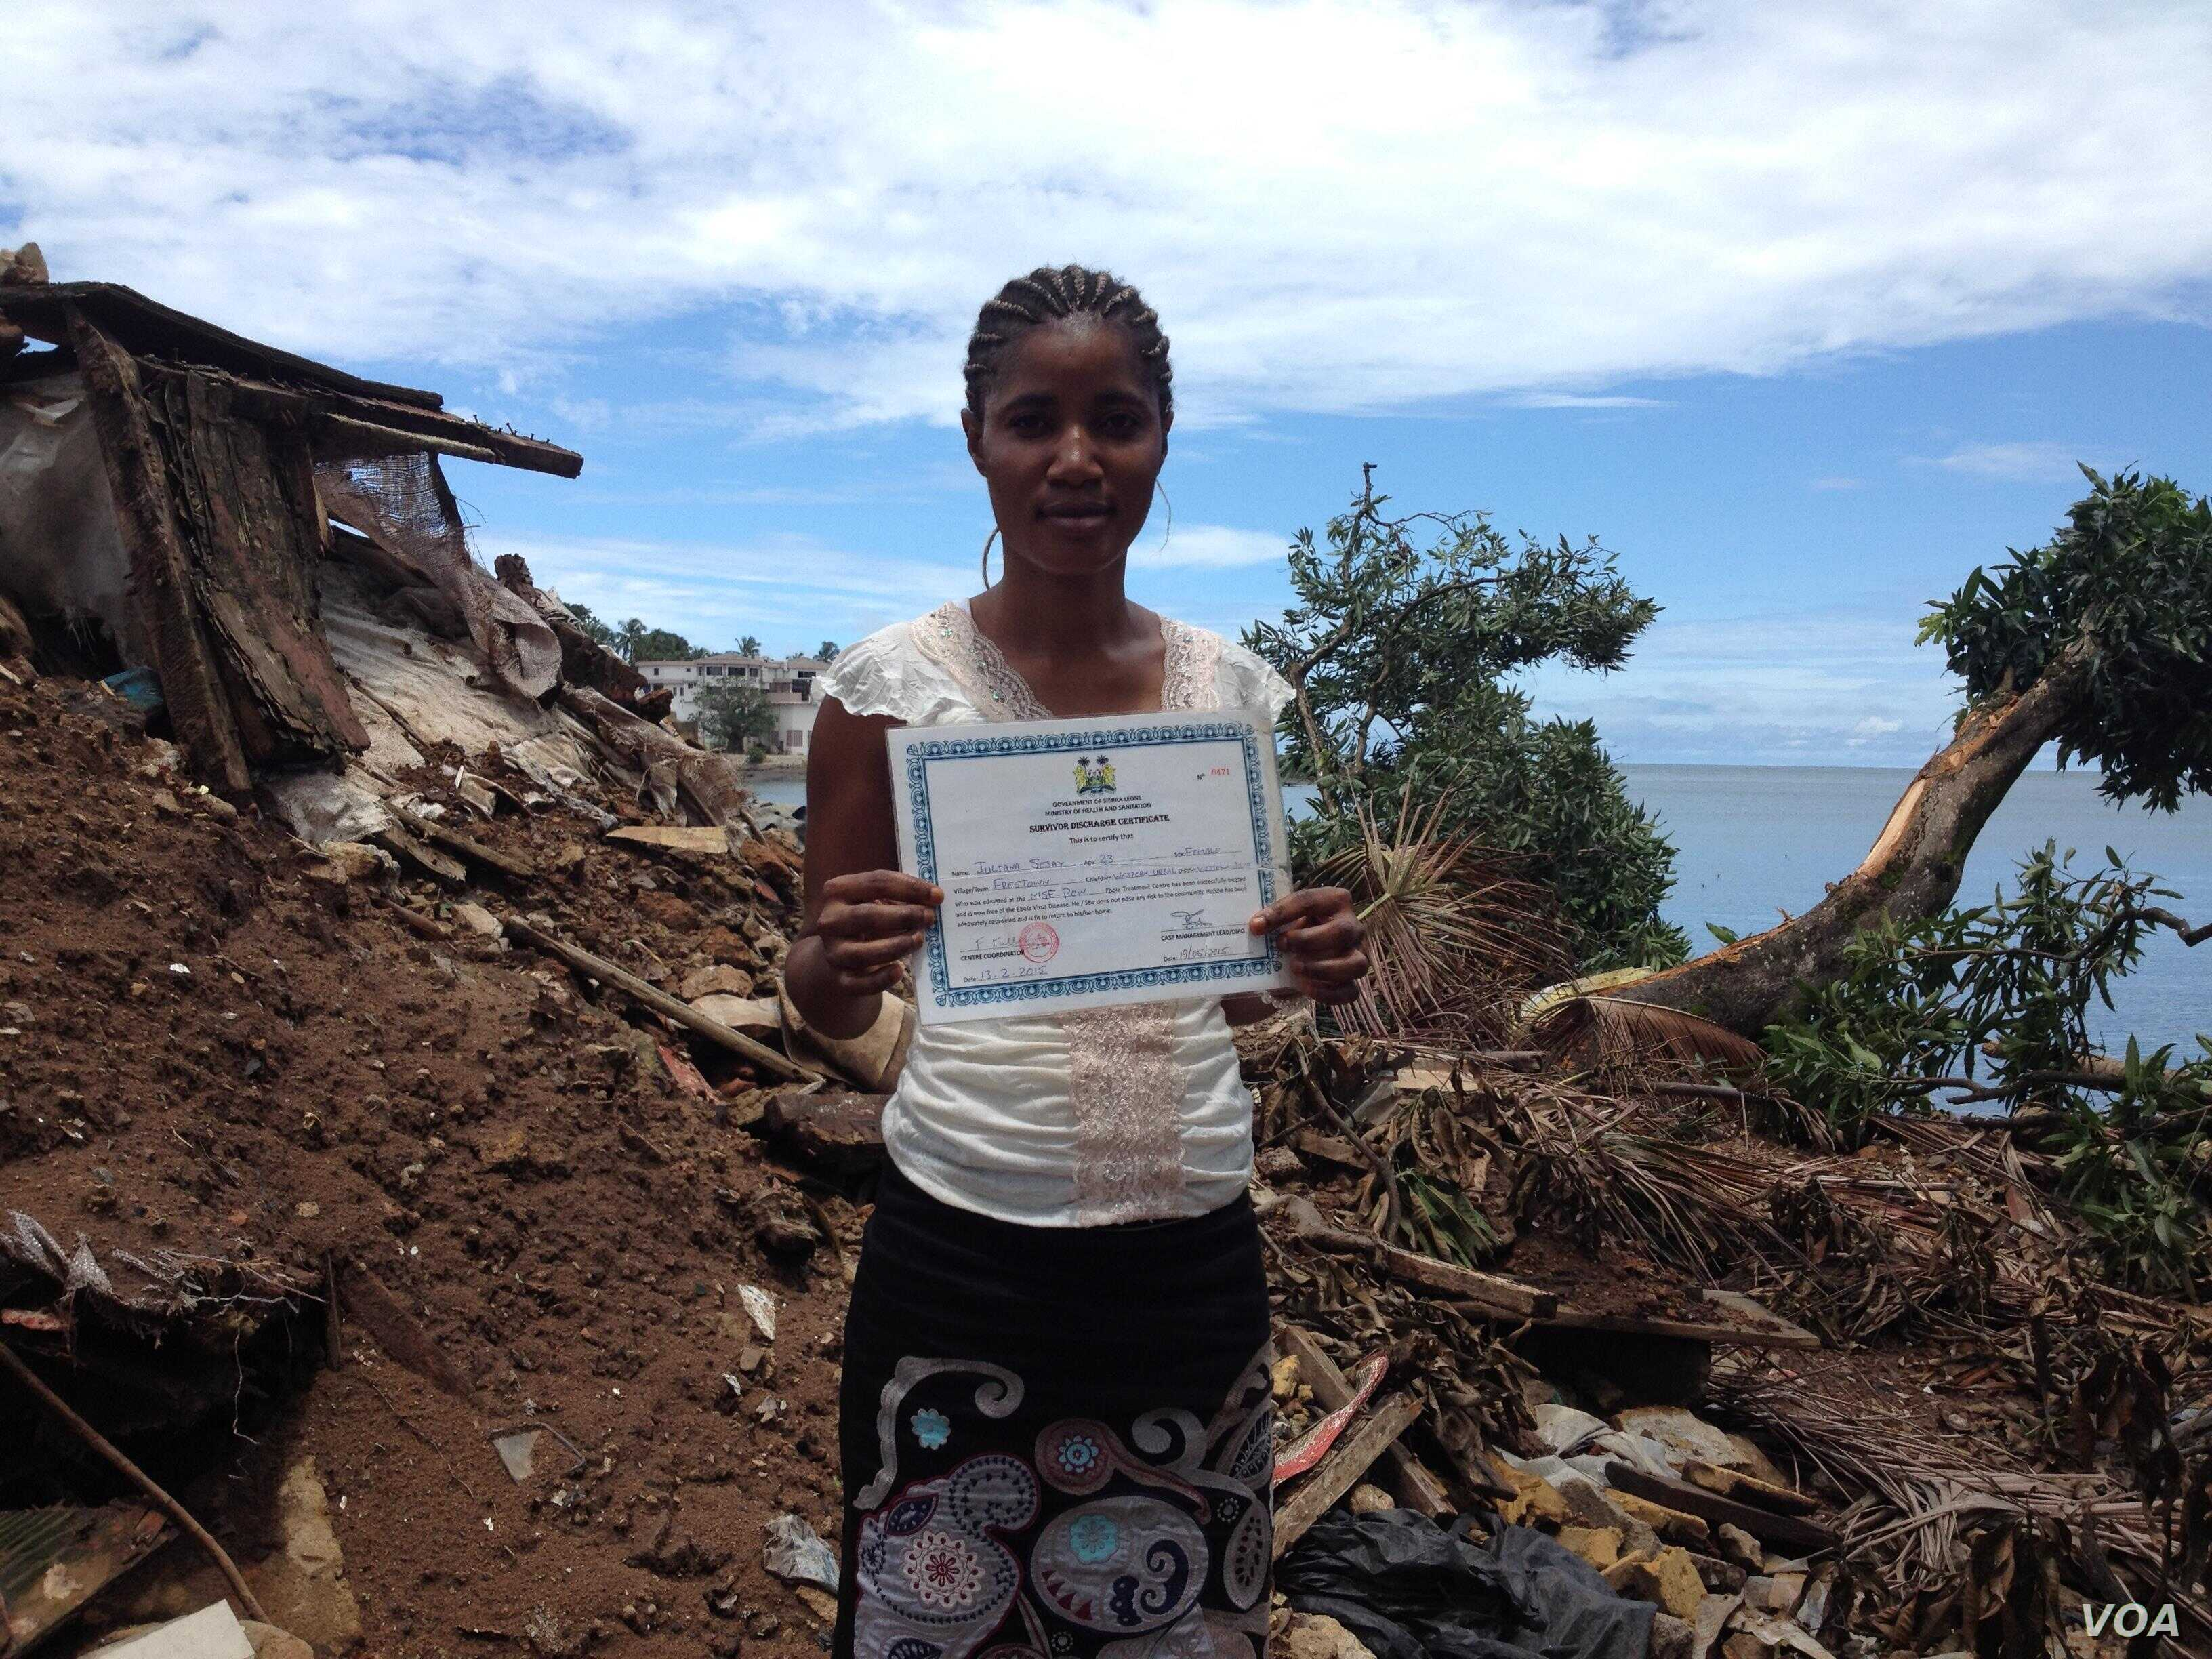 Ebola survivor Juliana Sesay stands where her house and business once stood, Freetown, Sierra Leone, Sept. 14, 2015. (VOA/N. Devries)